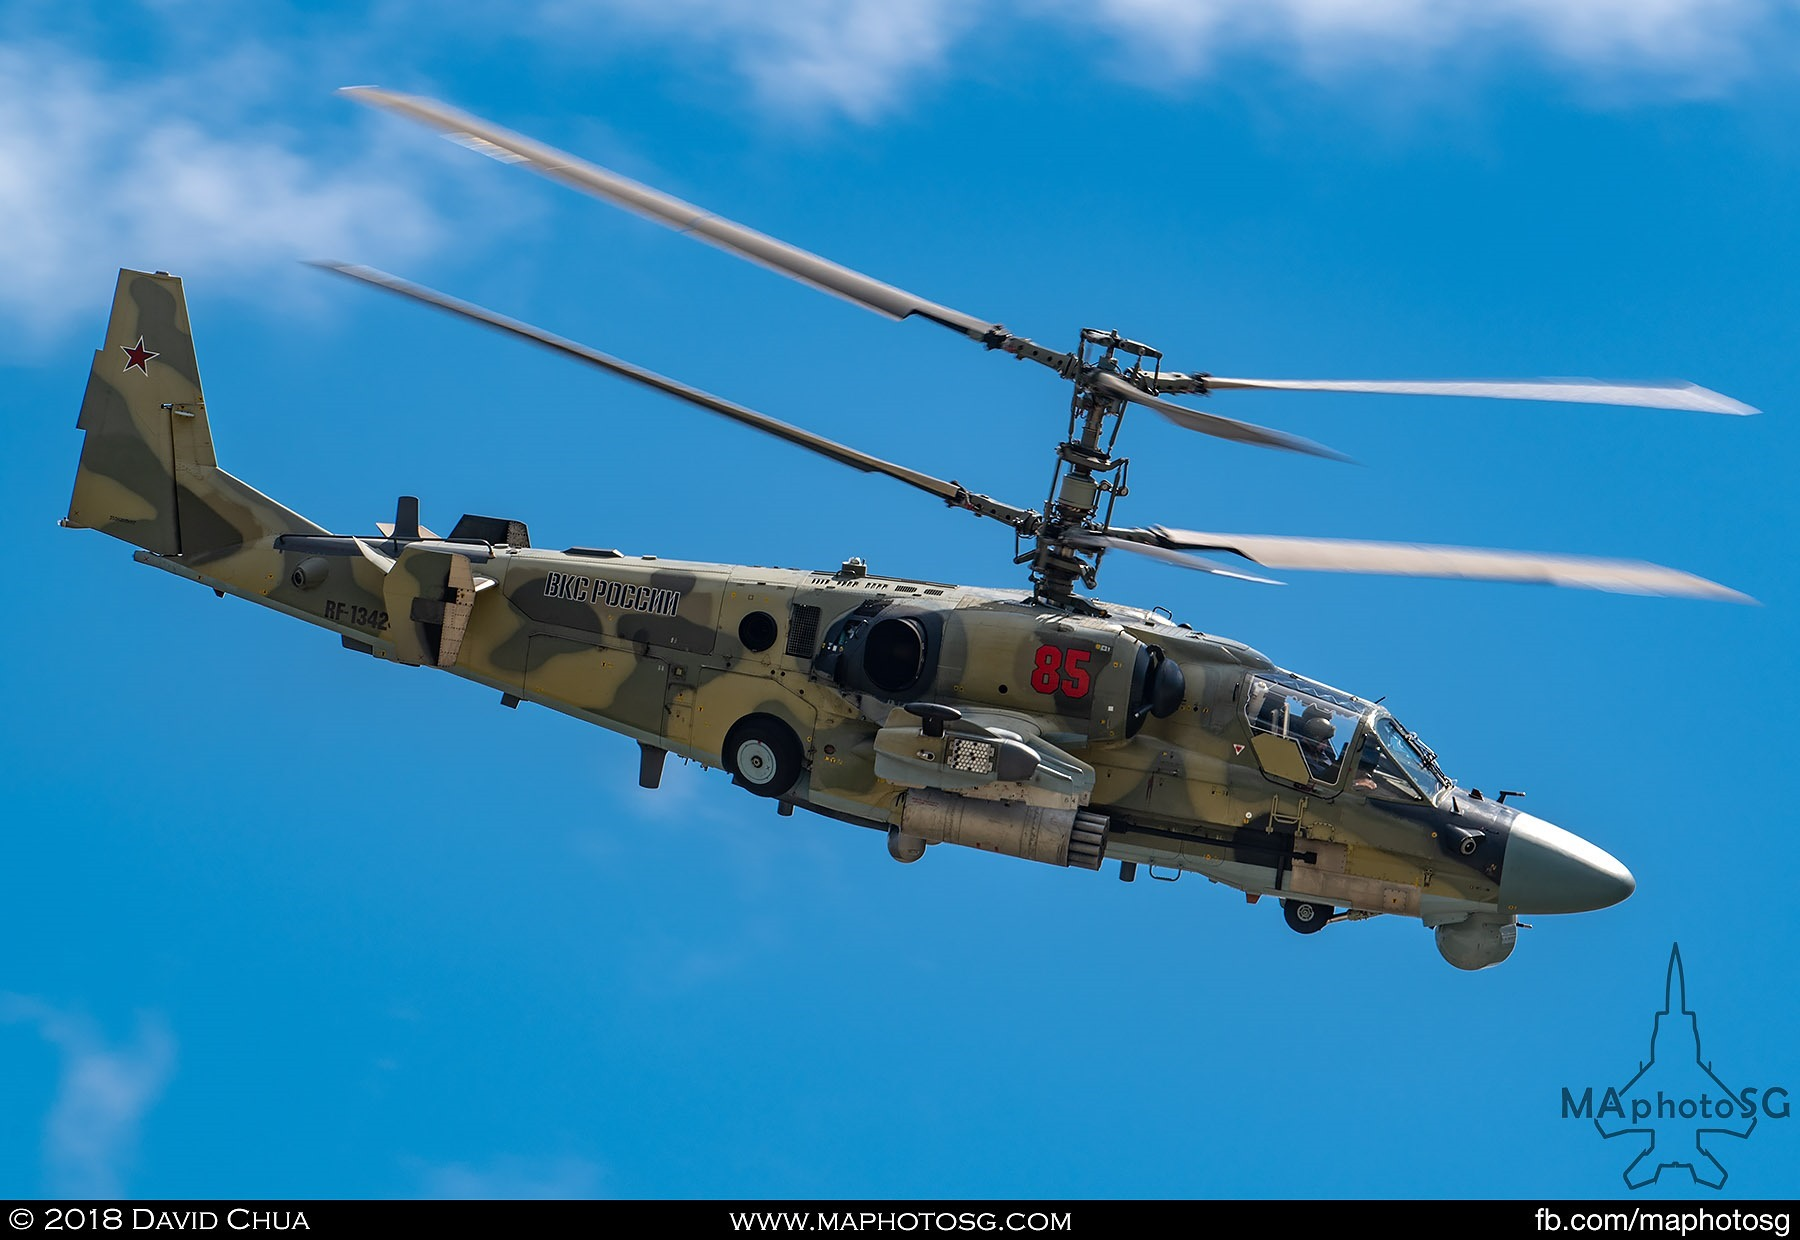 "47. Kamov Ka-52 ""Alligator"" side profile showing the huge 30mm cannon and rocket pod"